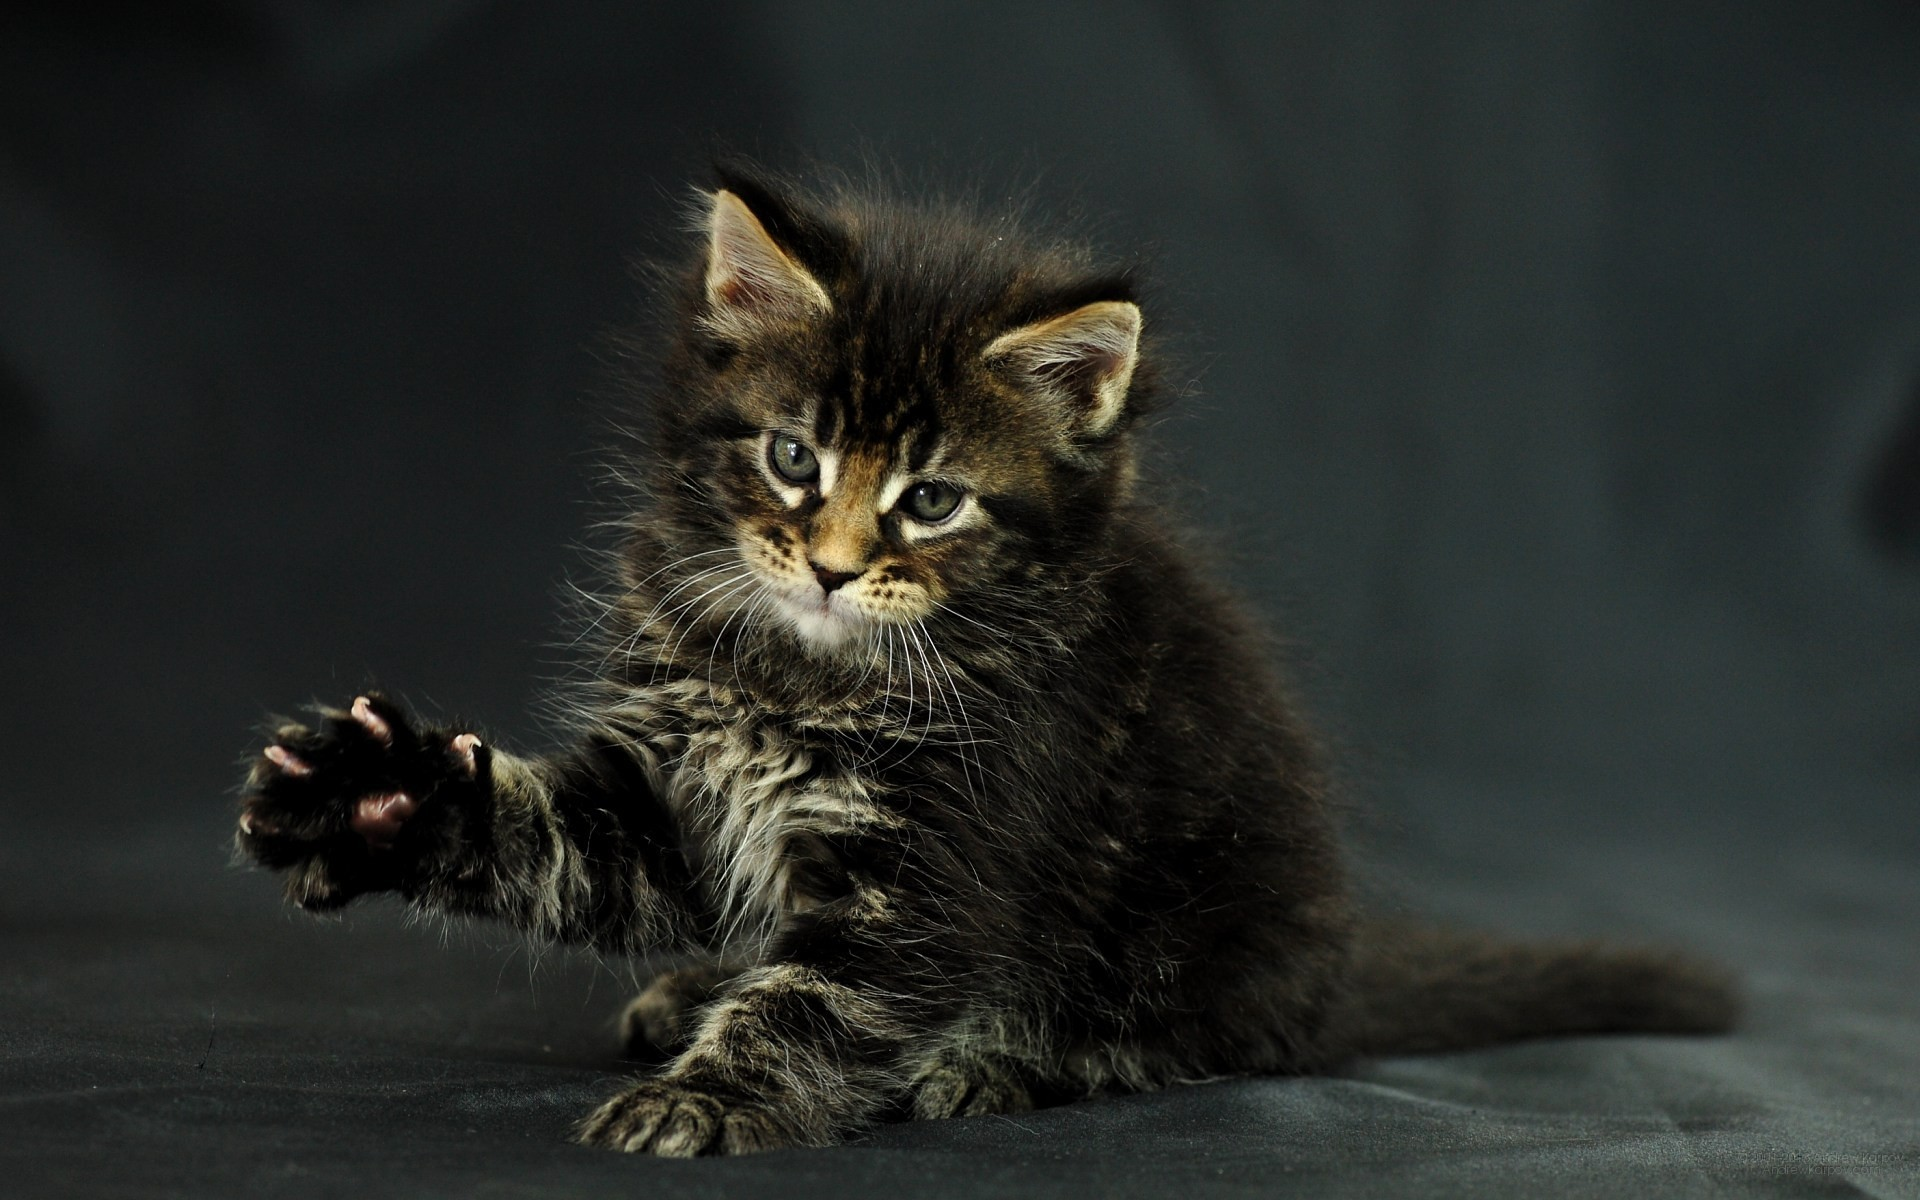 1920x1200 Pictures lolcat Funny Cat desktop wallpaper 1920 x 1200 image · 2011 Photo:  Odin, photo of Maine Coon India's kitten, born December 5th, 2010, ...